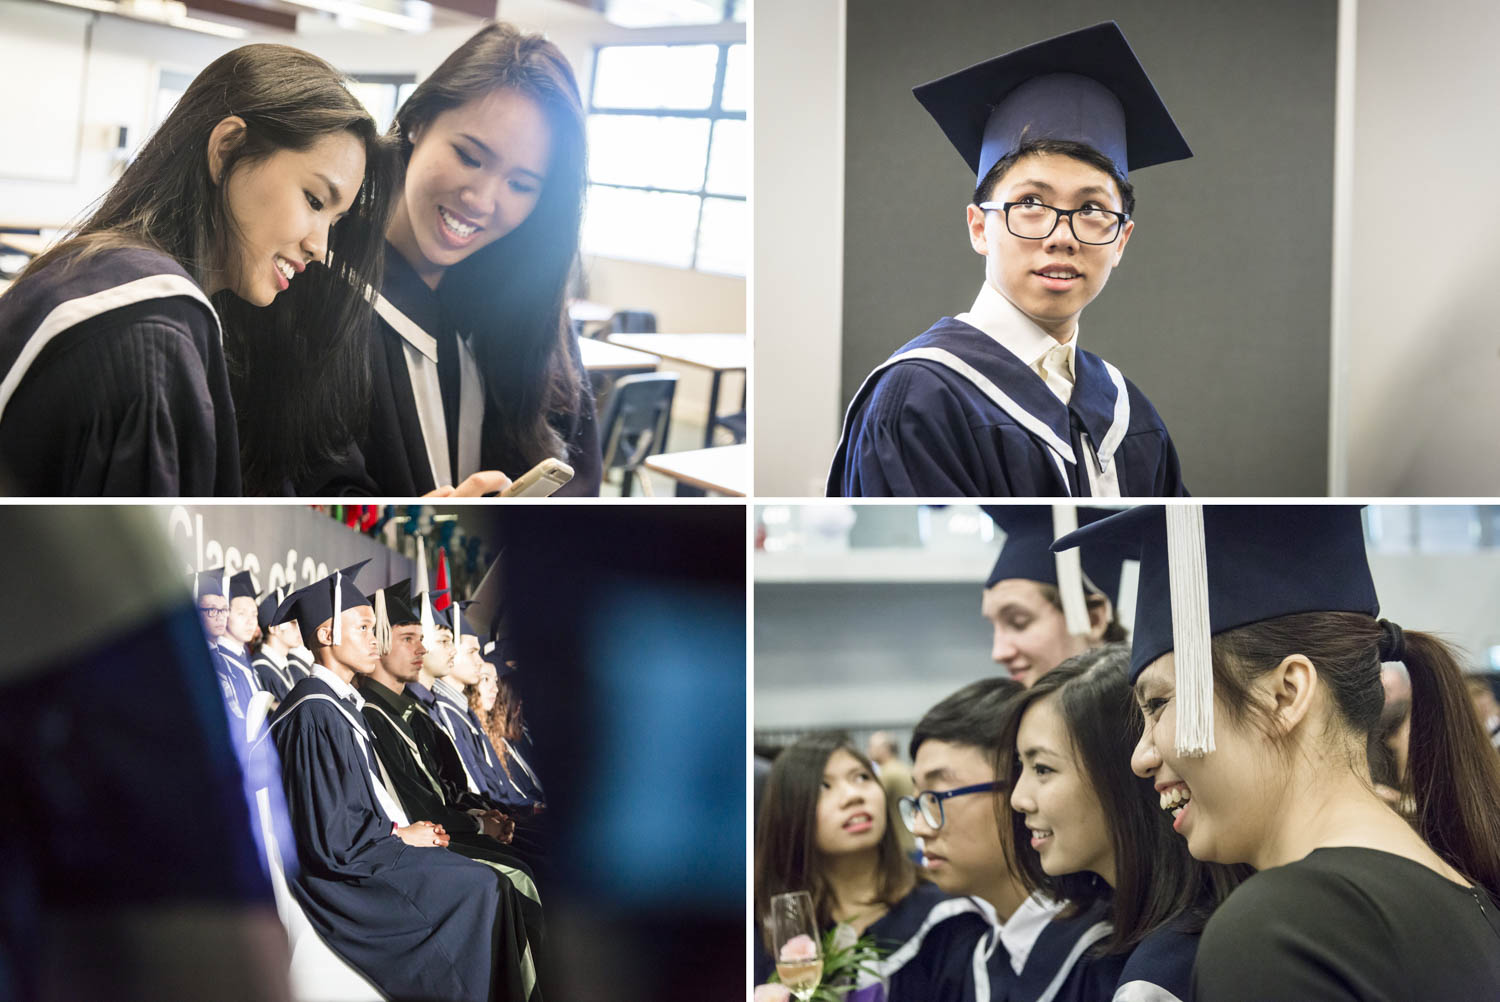 Graduation day ceremony in UNIS Hanoi | Vietnam events photographer | Francis Roux Portfolio